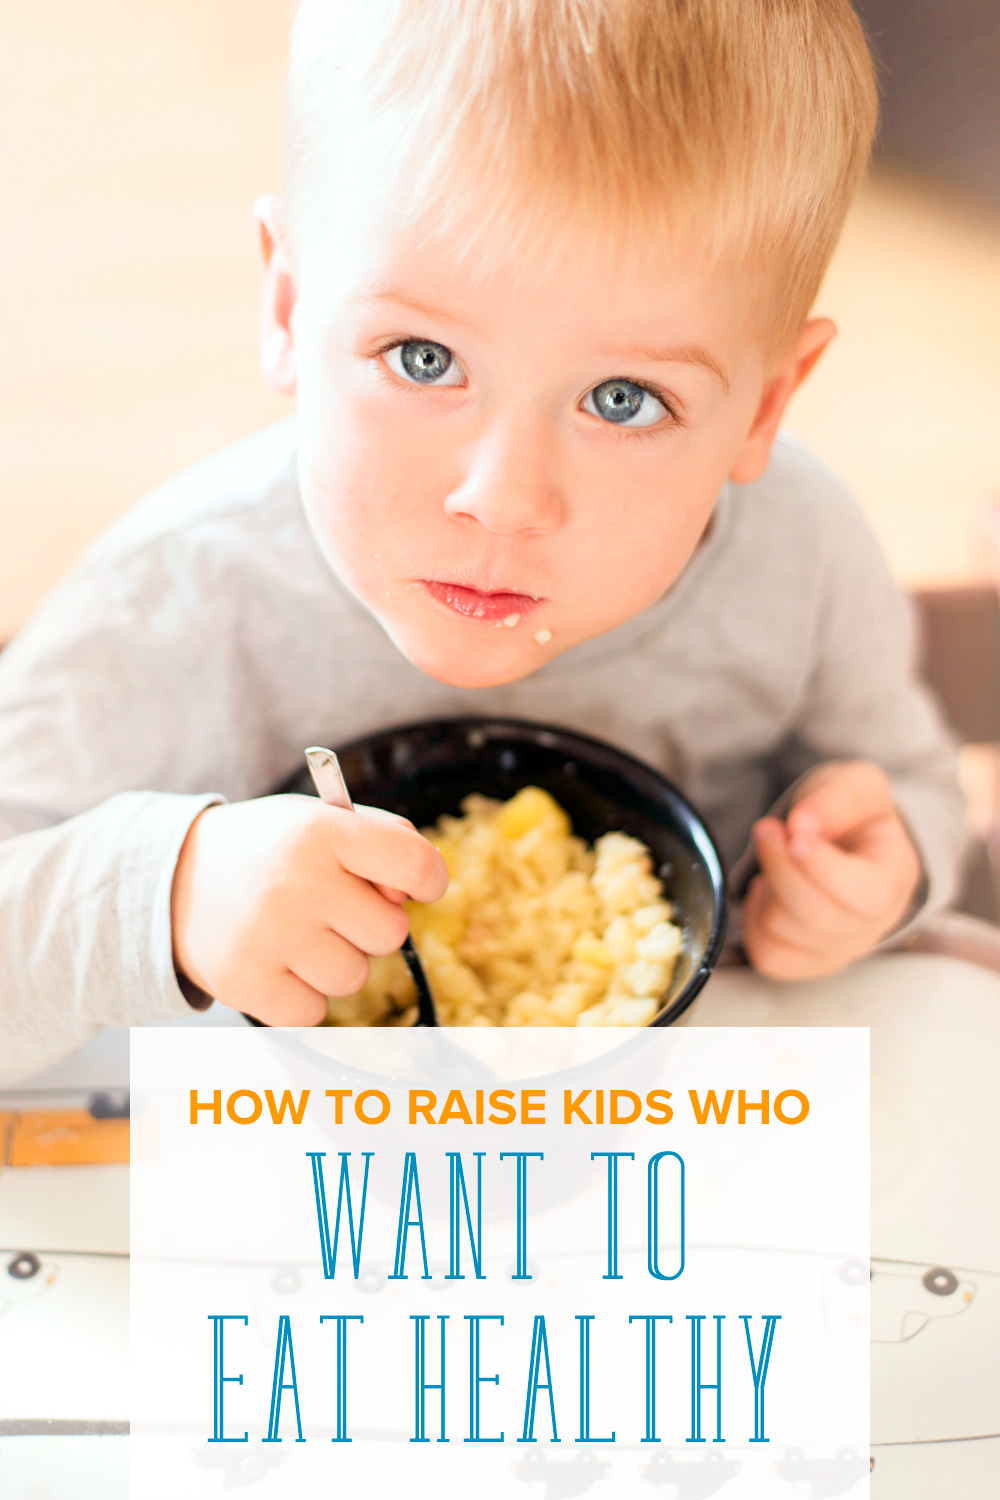 Looking for ways to encourage your children not only to eat healthy but WANT to? Check out how to raise kids who want to eat healthy.